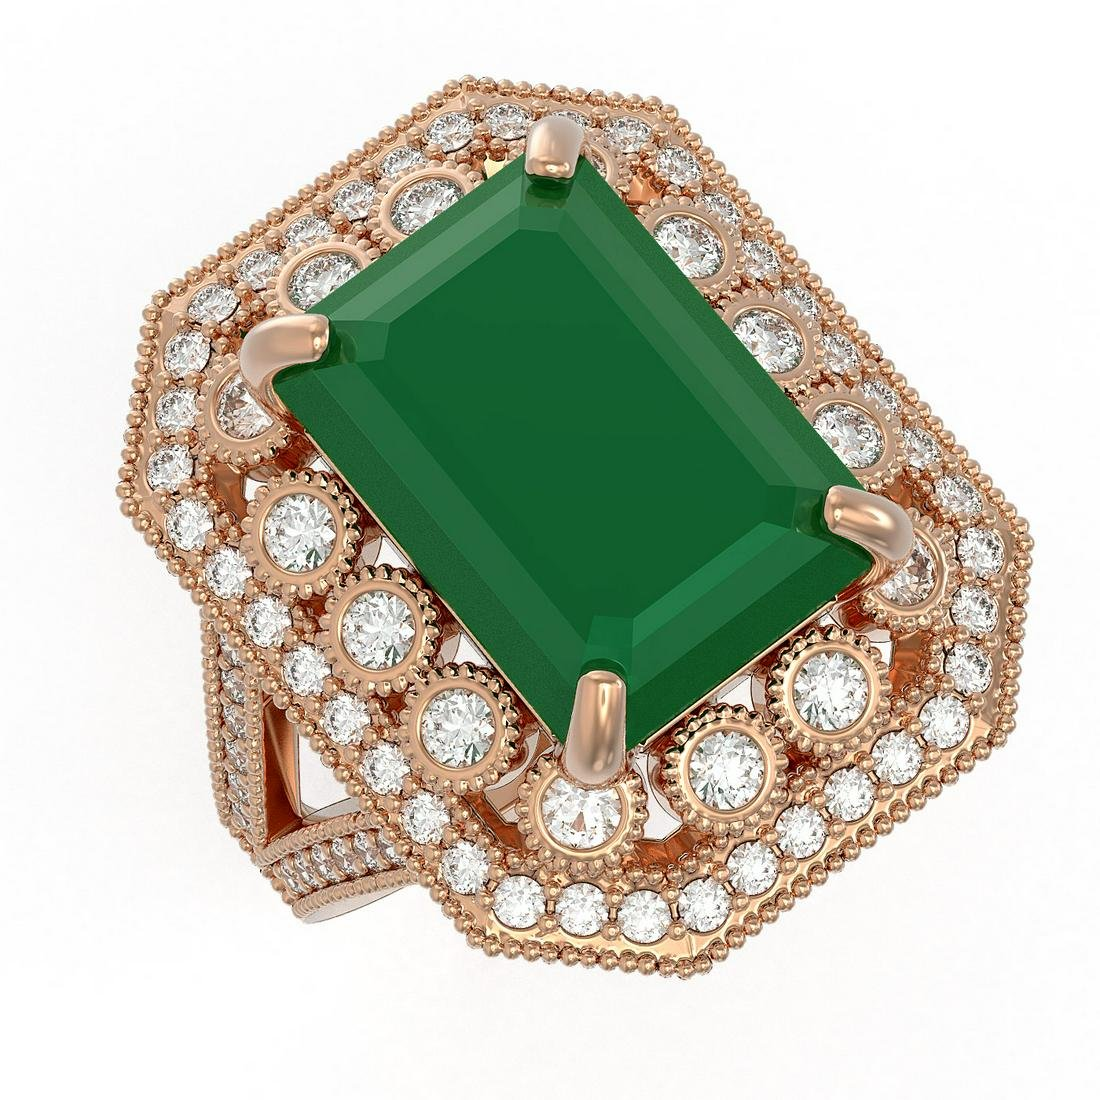 11.98 ctw Emerald & Diamond Ring 14K Rose Gold